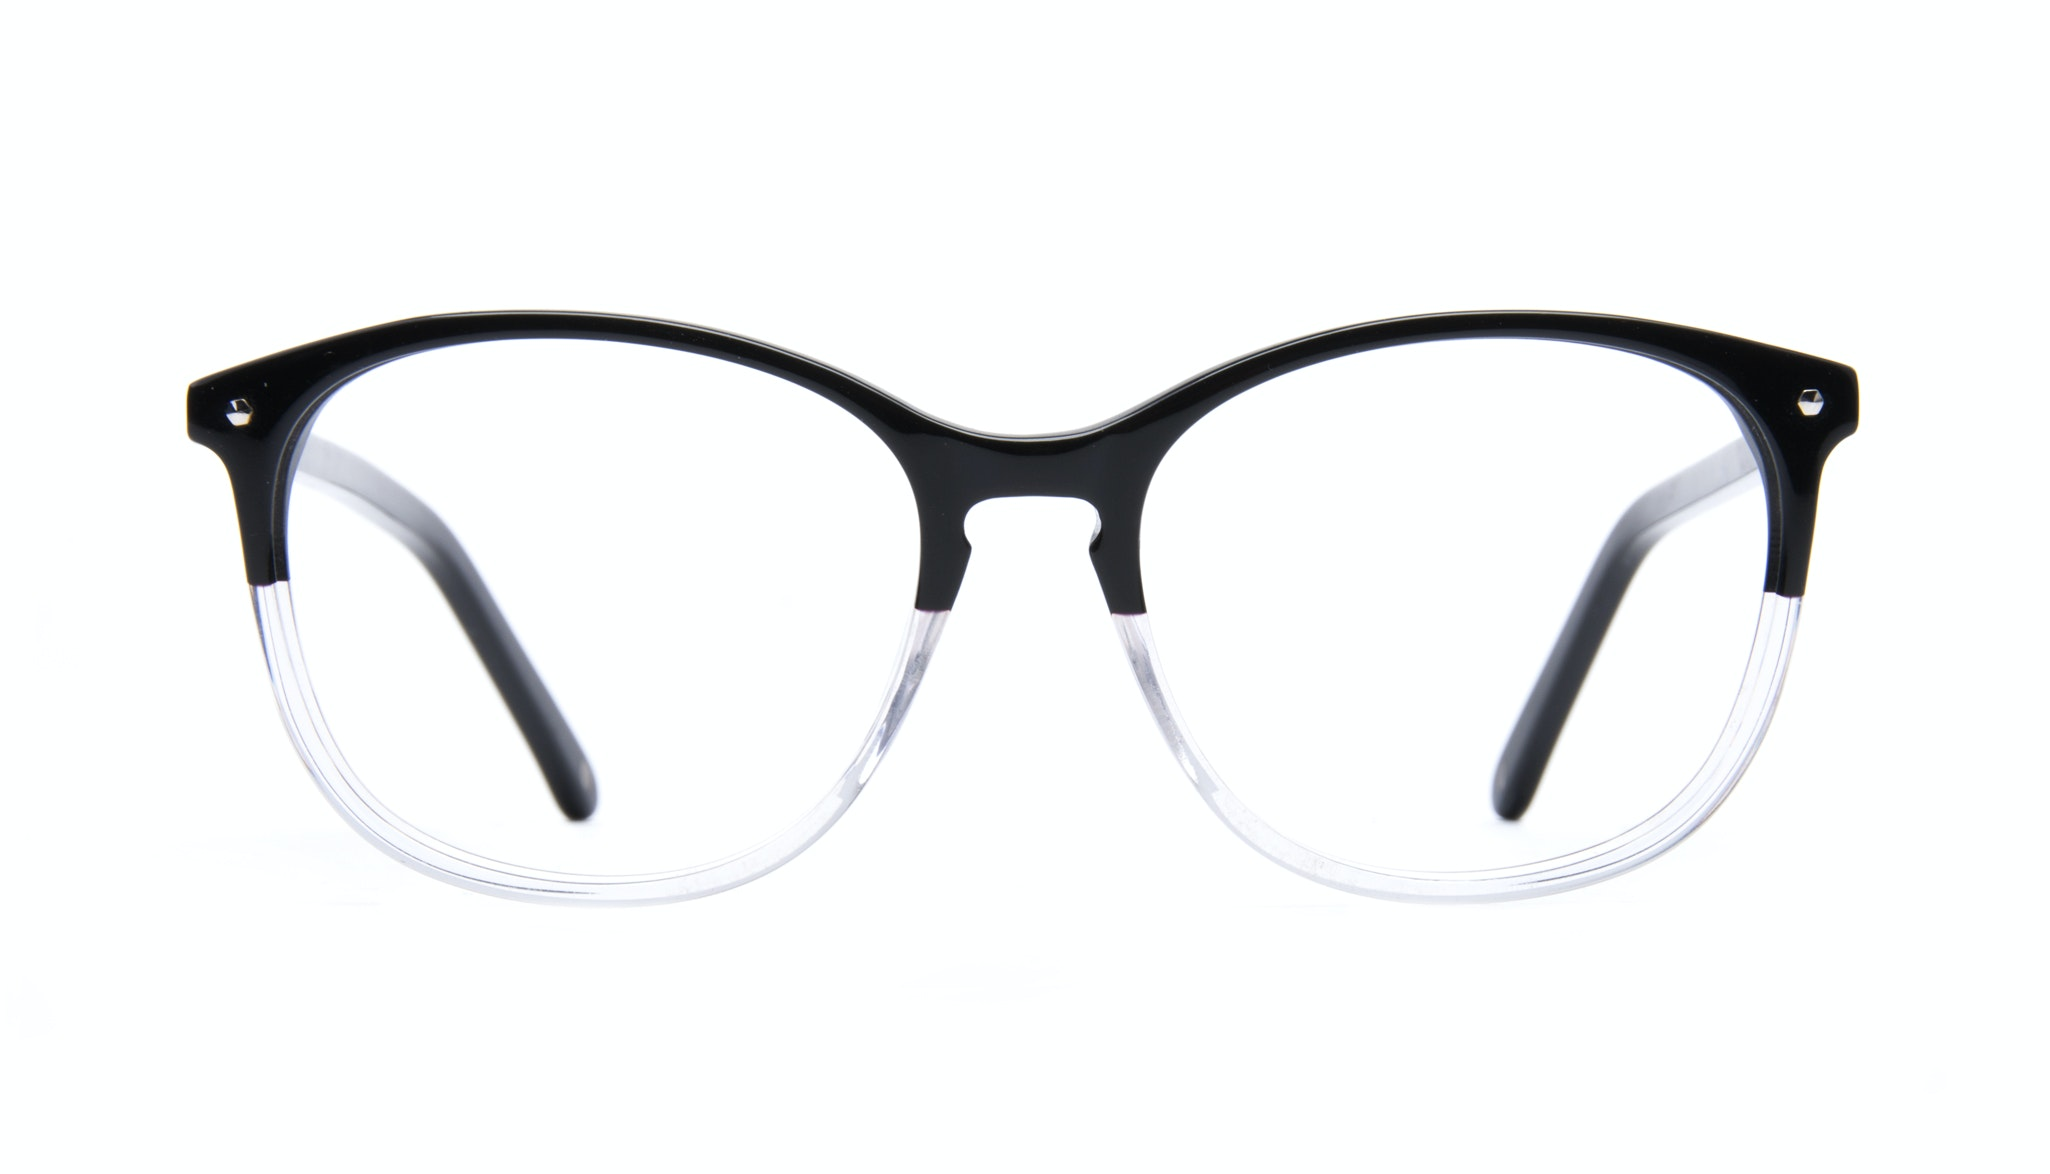 Affordable Fashion Glasses Rectangle Round Eyeglasses Women Nadine Two Tone Black